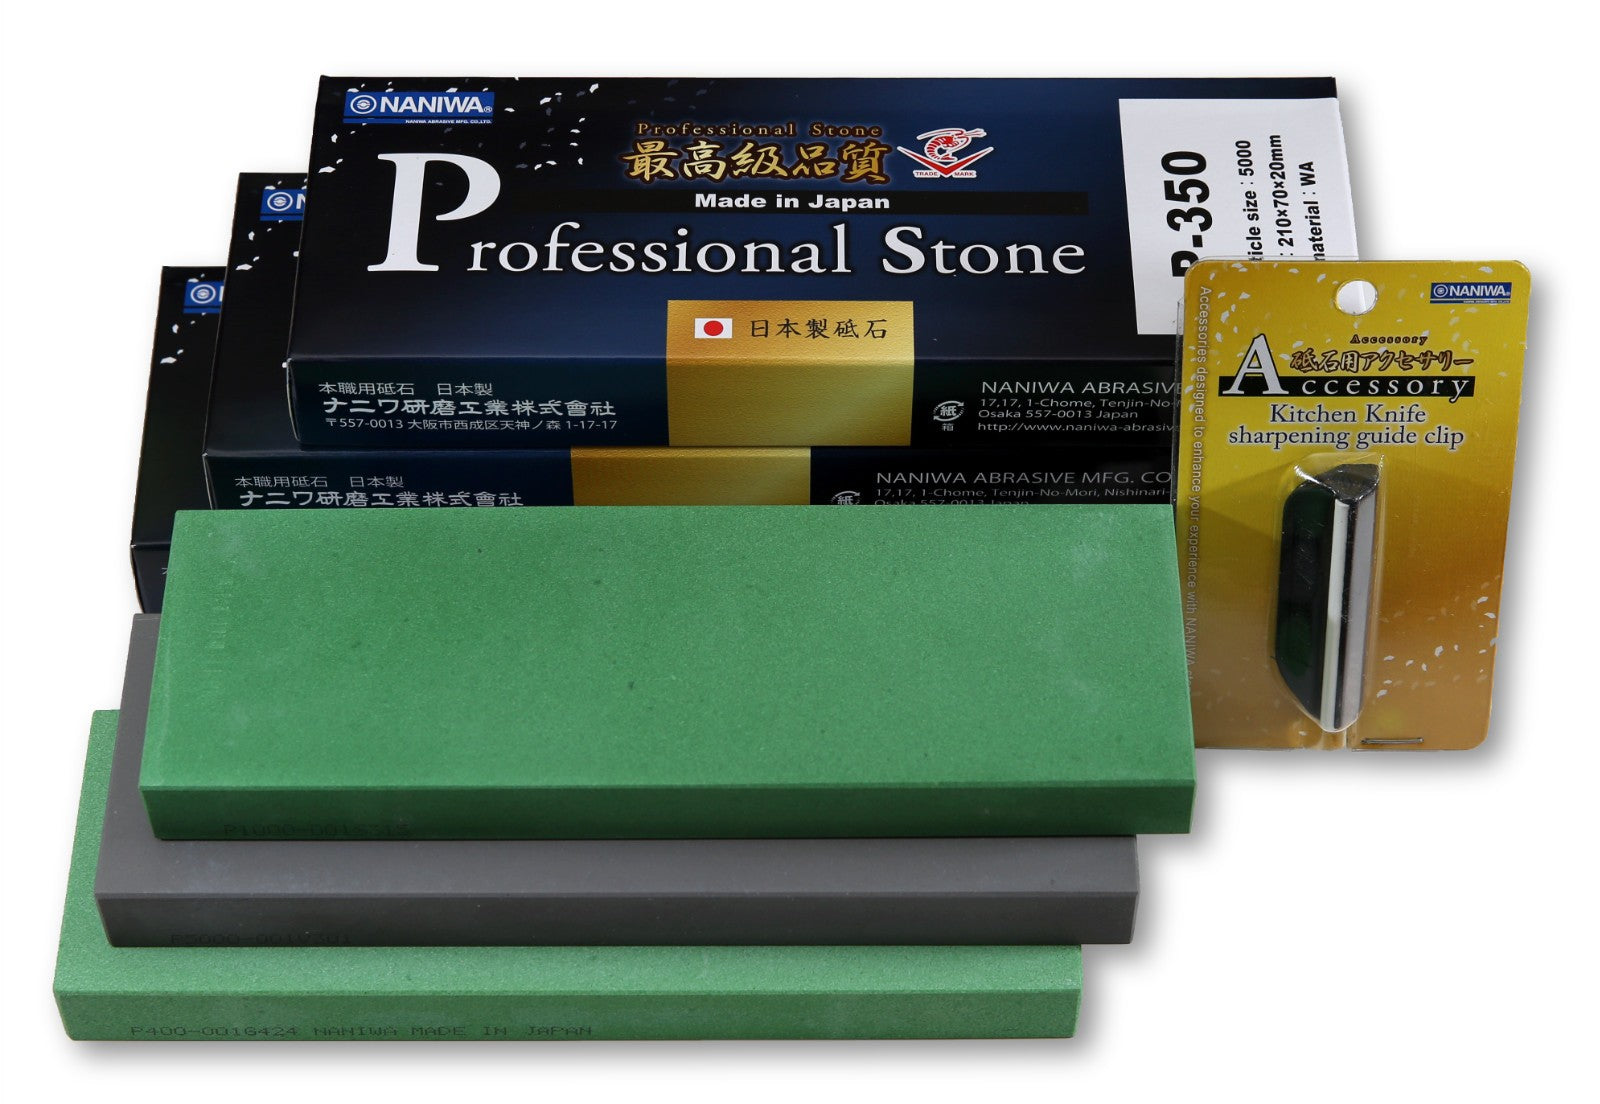 Naniwa Professional Japanese Sharpening Stones, Set of 3: 400, 1000, 5000; Save $10 + FREE Sharpening Guide Clip